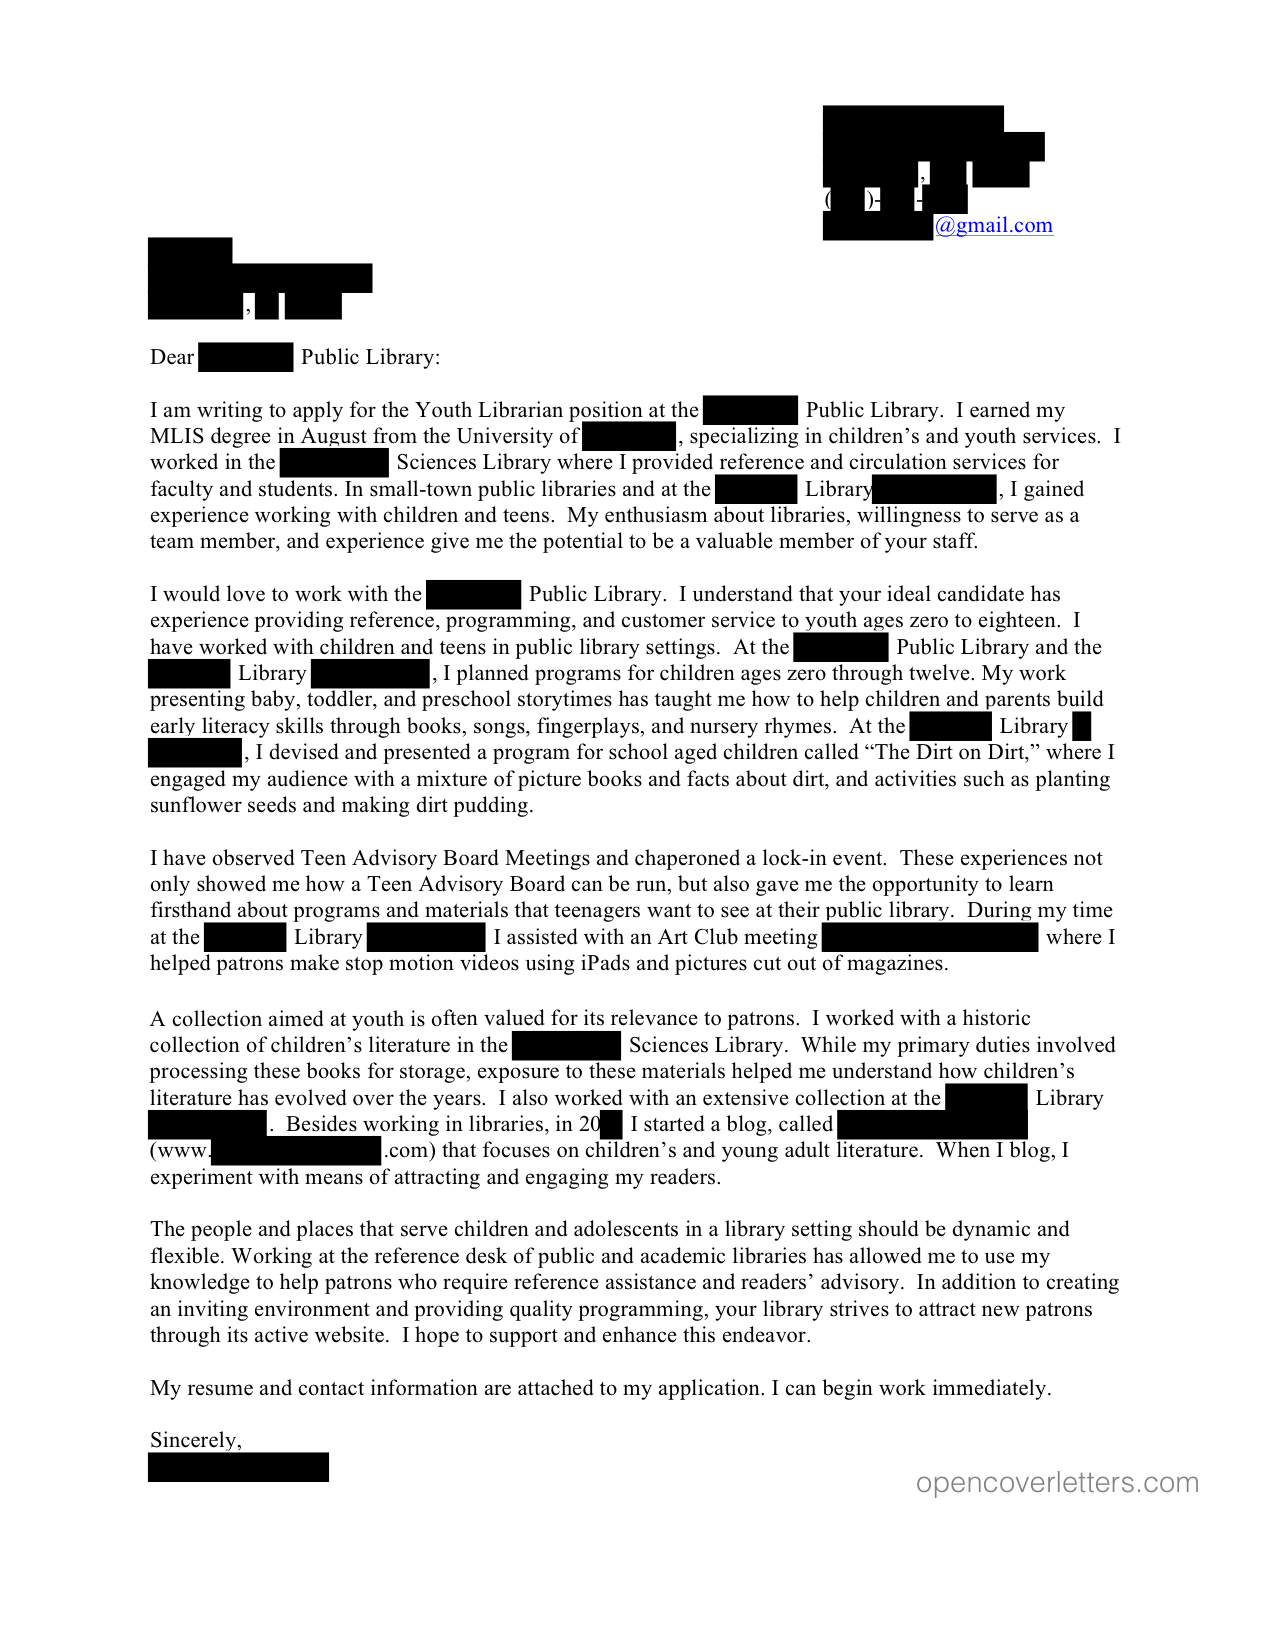 this librarian cover letter is a sample of the quality workmanship a resumes for teachers produces